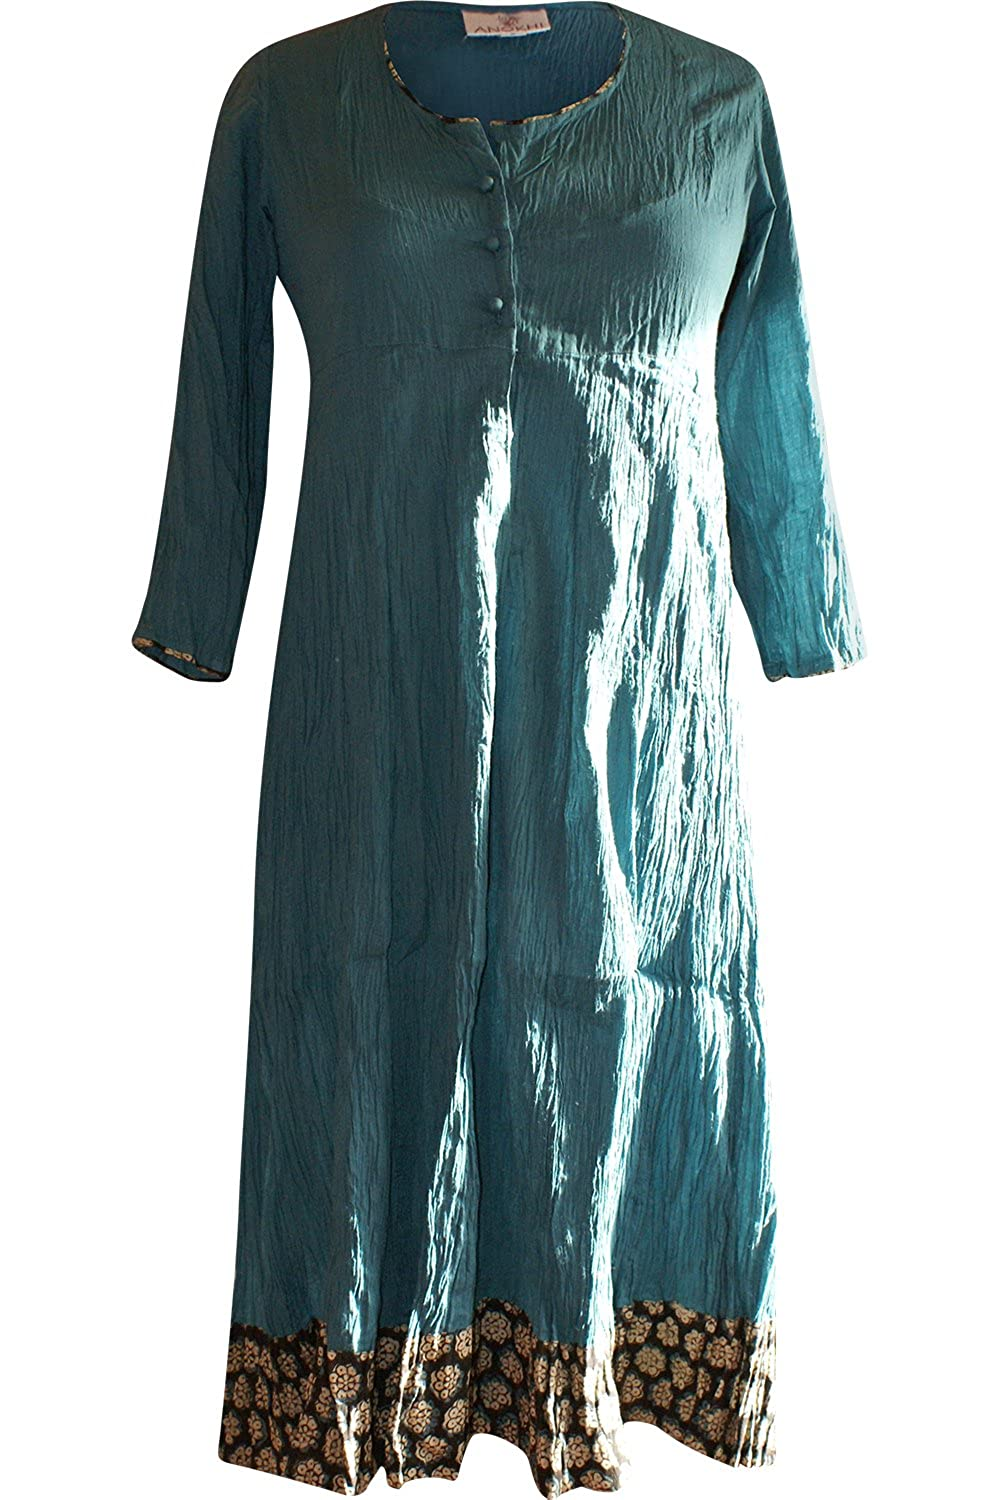 Anokhi Handmade and Hand Printed Crinkle Dress in Green Fairtrade Ethical